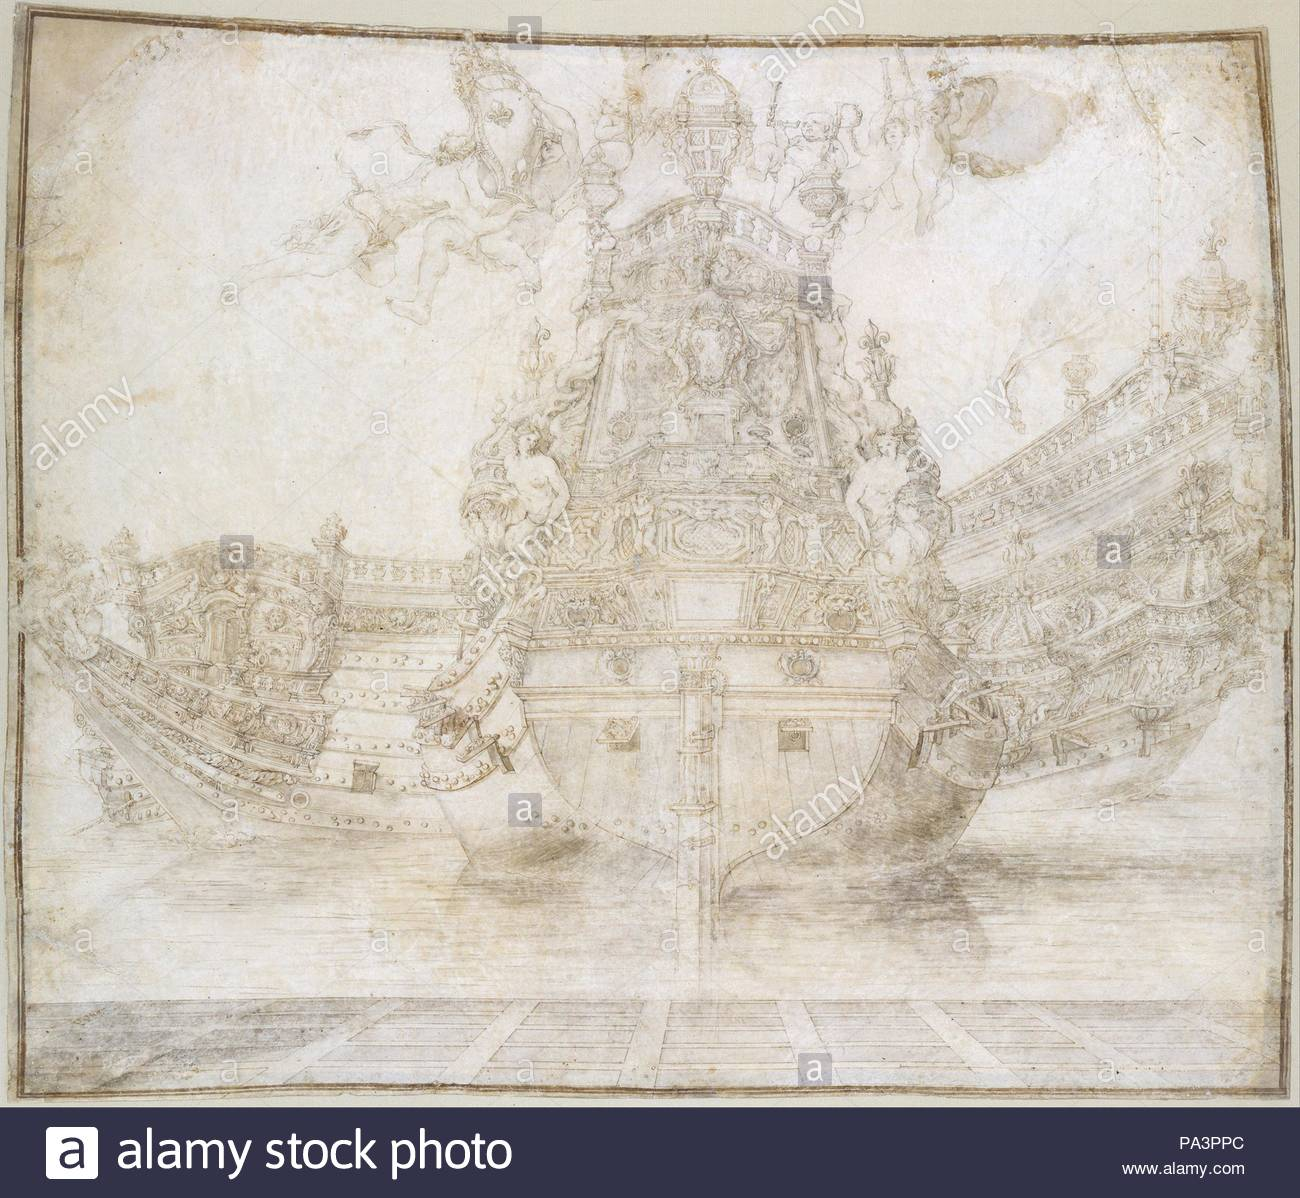 Design for the decoration of a Warship, 17th century, Pen and brown ink, brush and brown wash, over traces of gray chalk on parchment, 20 3/4 x 24 7/8 in. (52.7 x 63.2 cm), Drawings, Pierre Puget (French, Château Follet 1620–1694 Fougette). - Stock Image